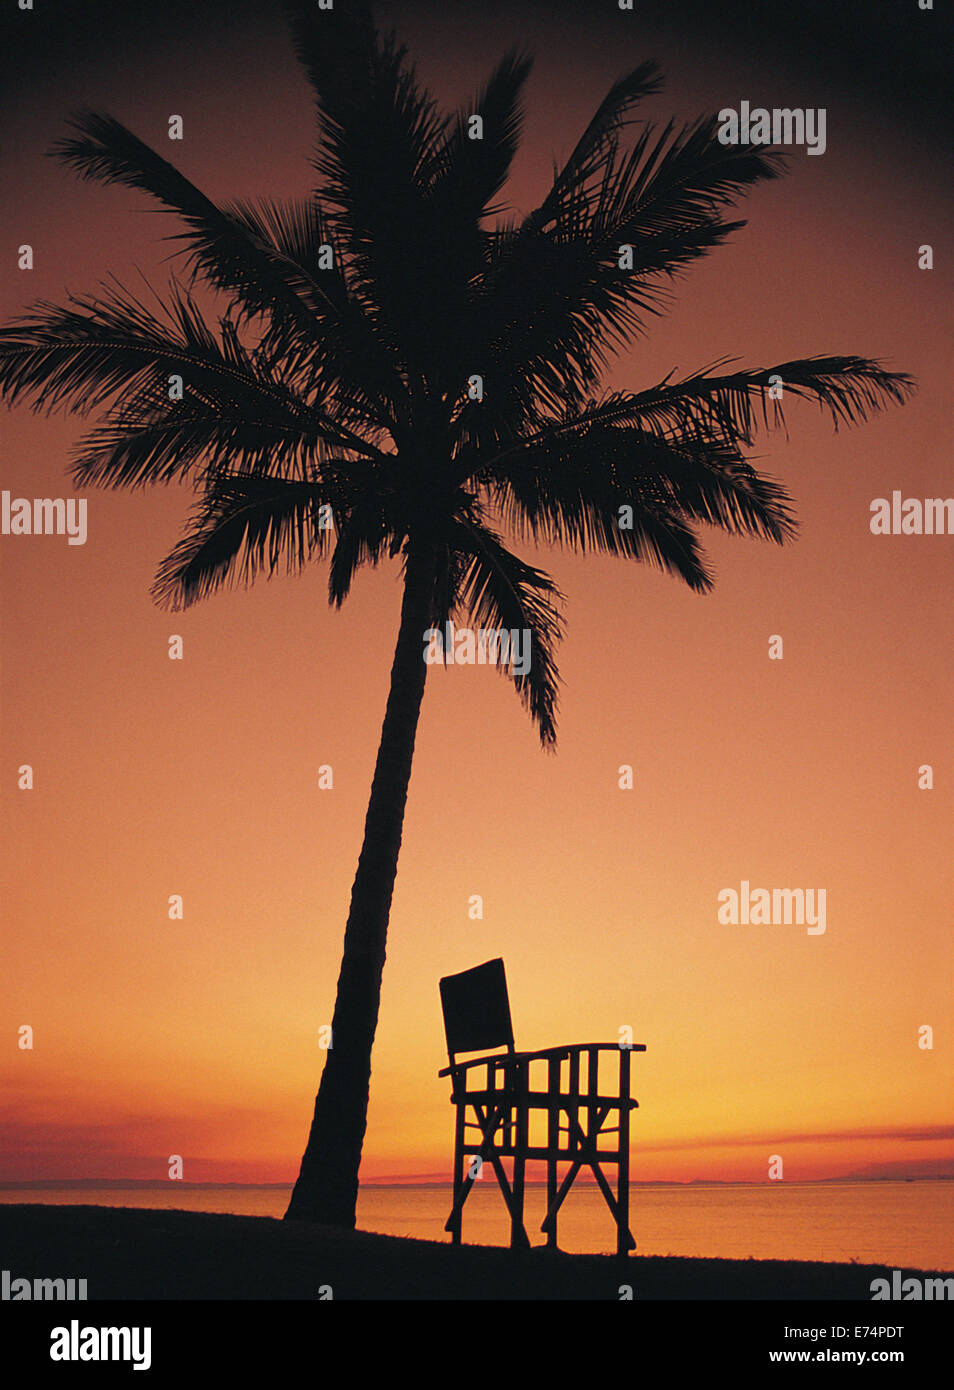 Deck chair under coconut palm in sunset Stock Photo